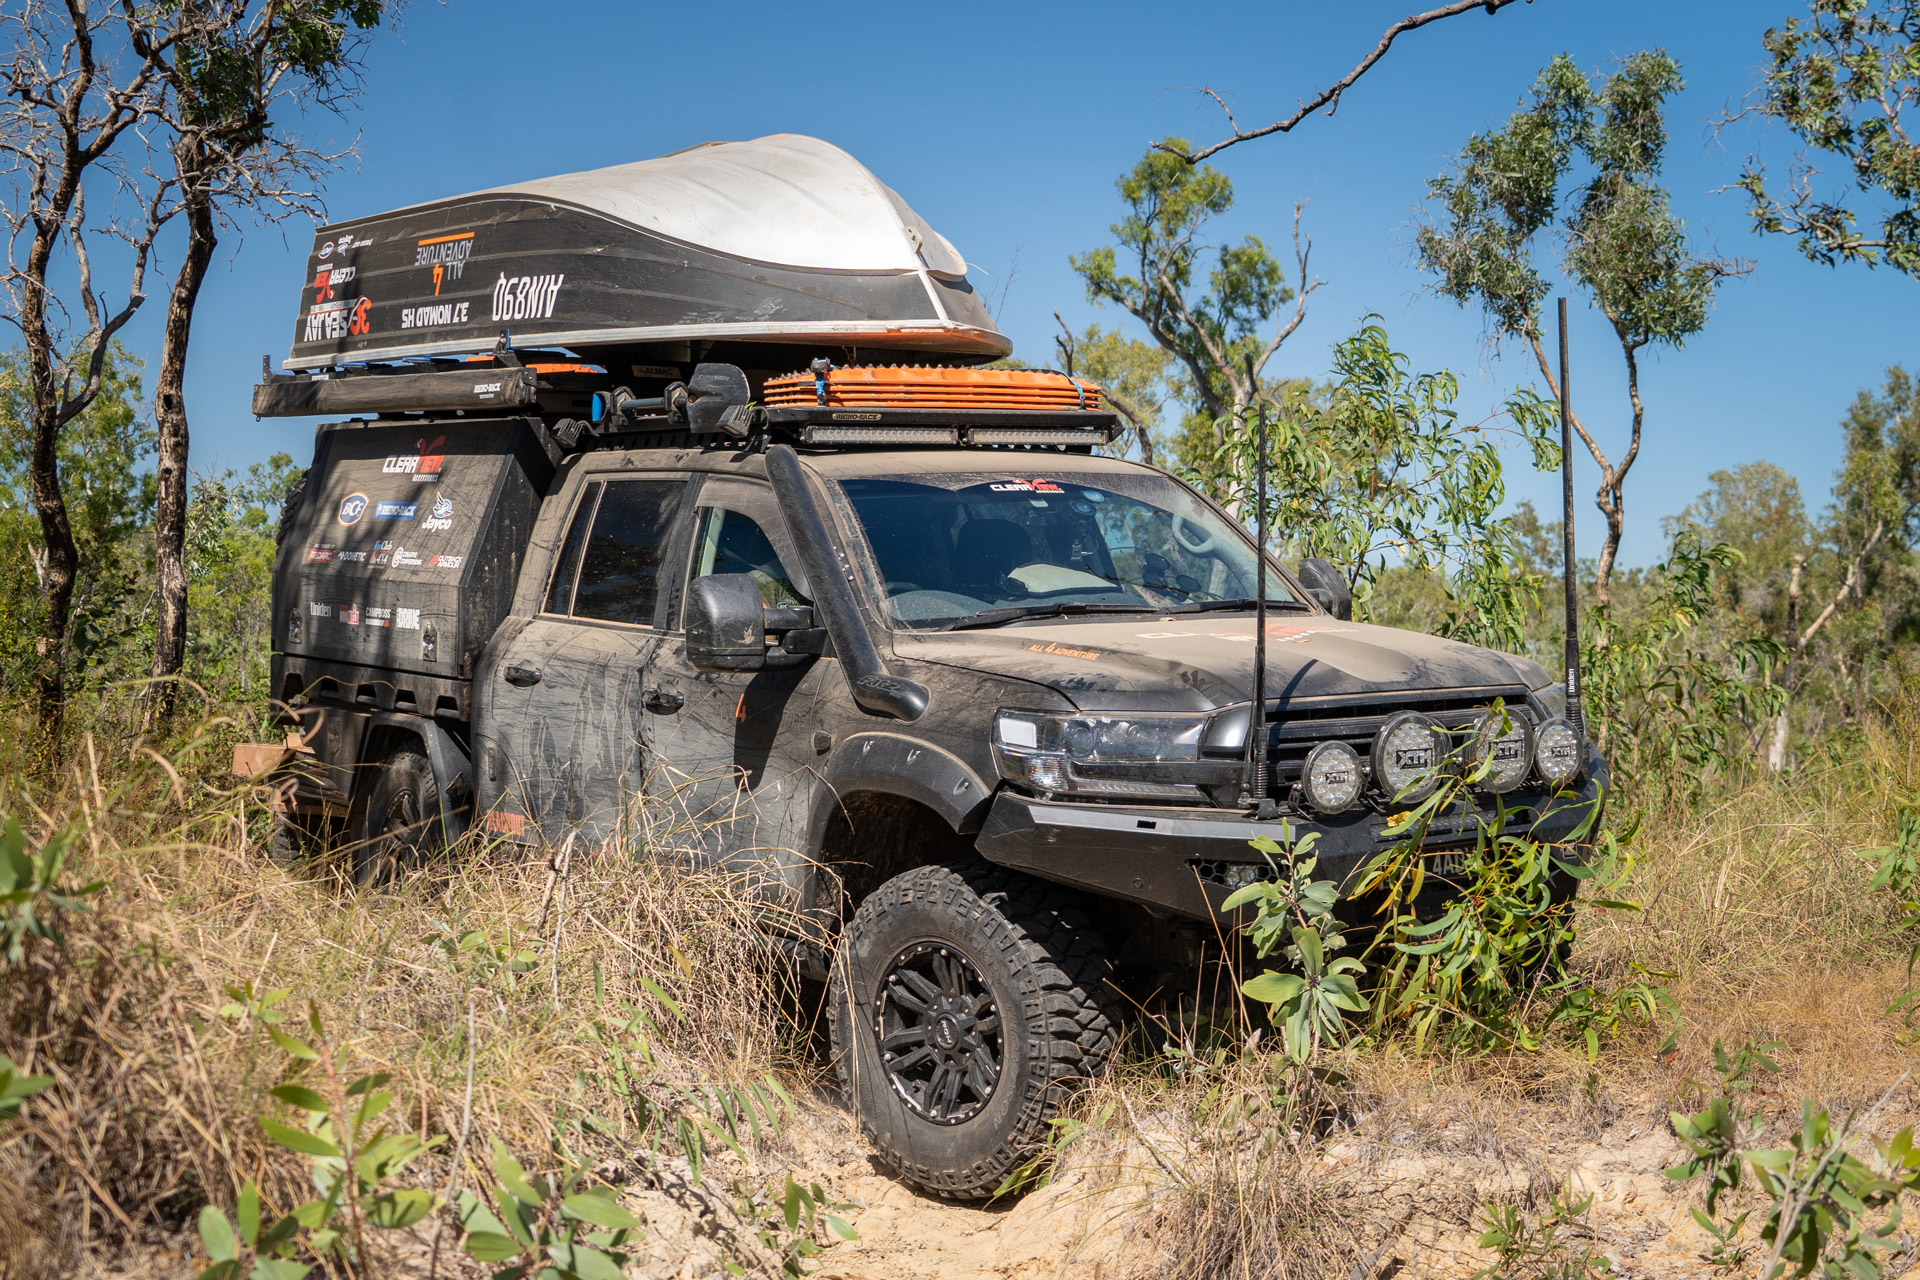 All 4 Adventure 200 Series LandCruiser offroad in scrub with Vapour wheels